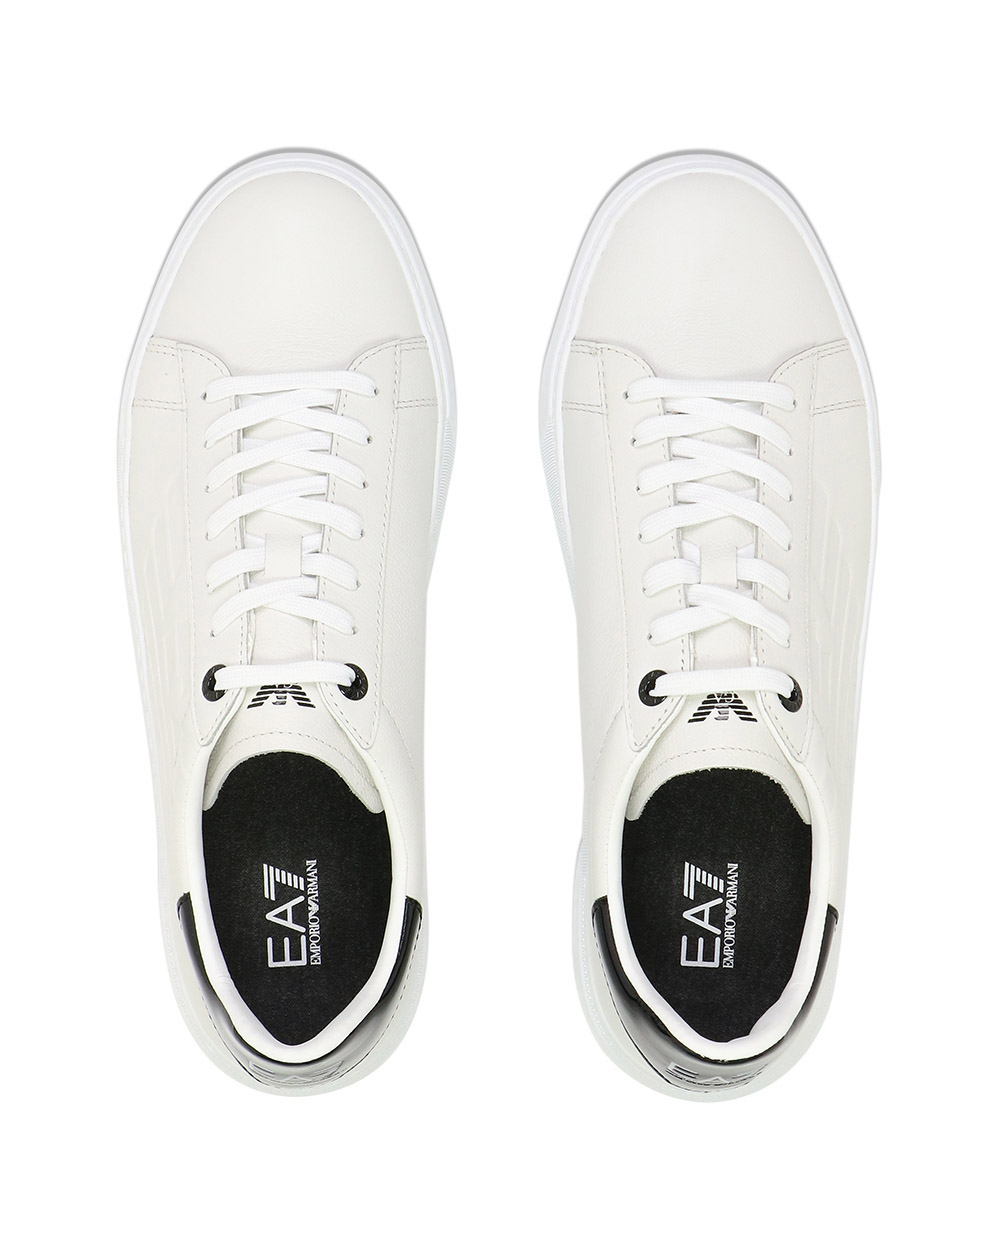 EA7 Inclining Stripes Sneakers 7